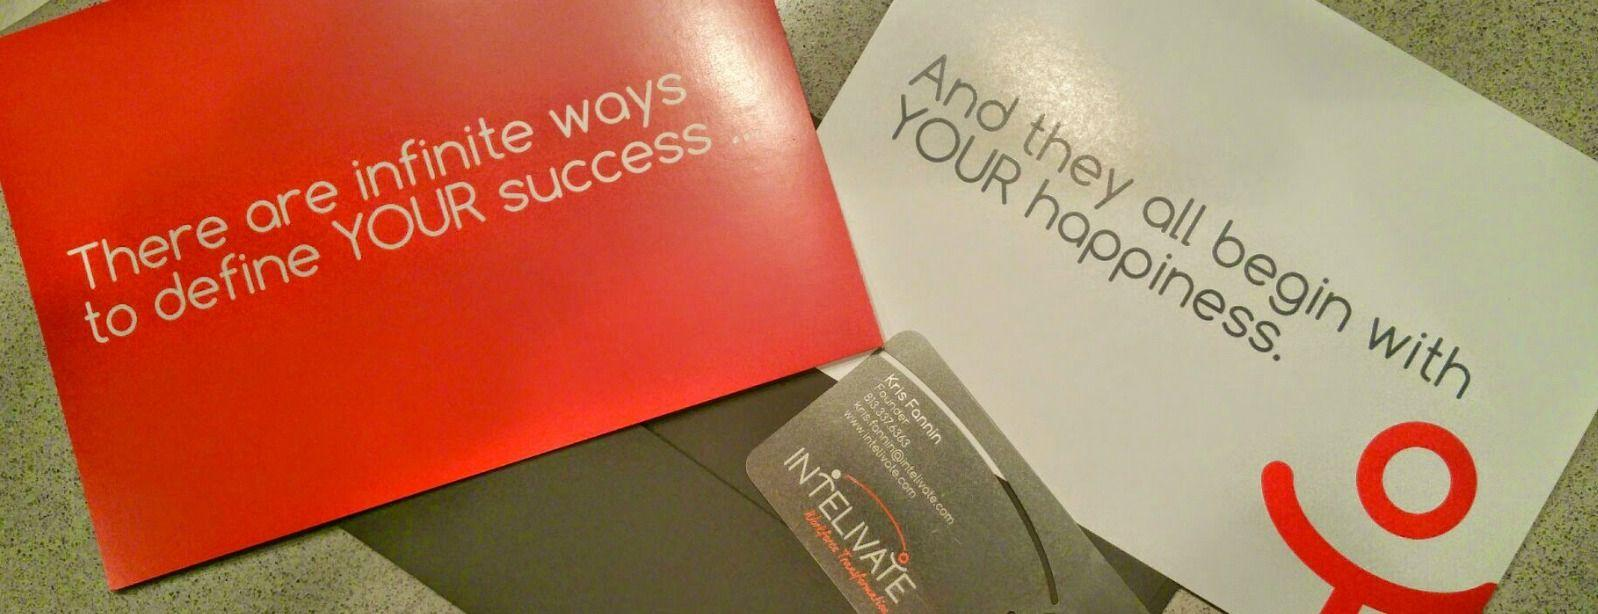 Intelivate Transformation Solutions Kris Fannin There are infinite ways to define your success and they all begin with your happiness Intelivate cards